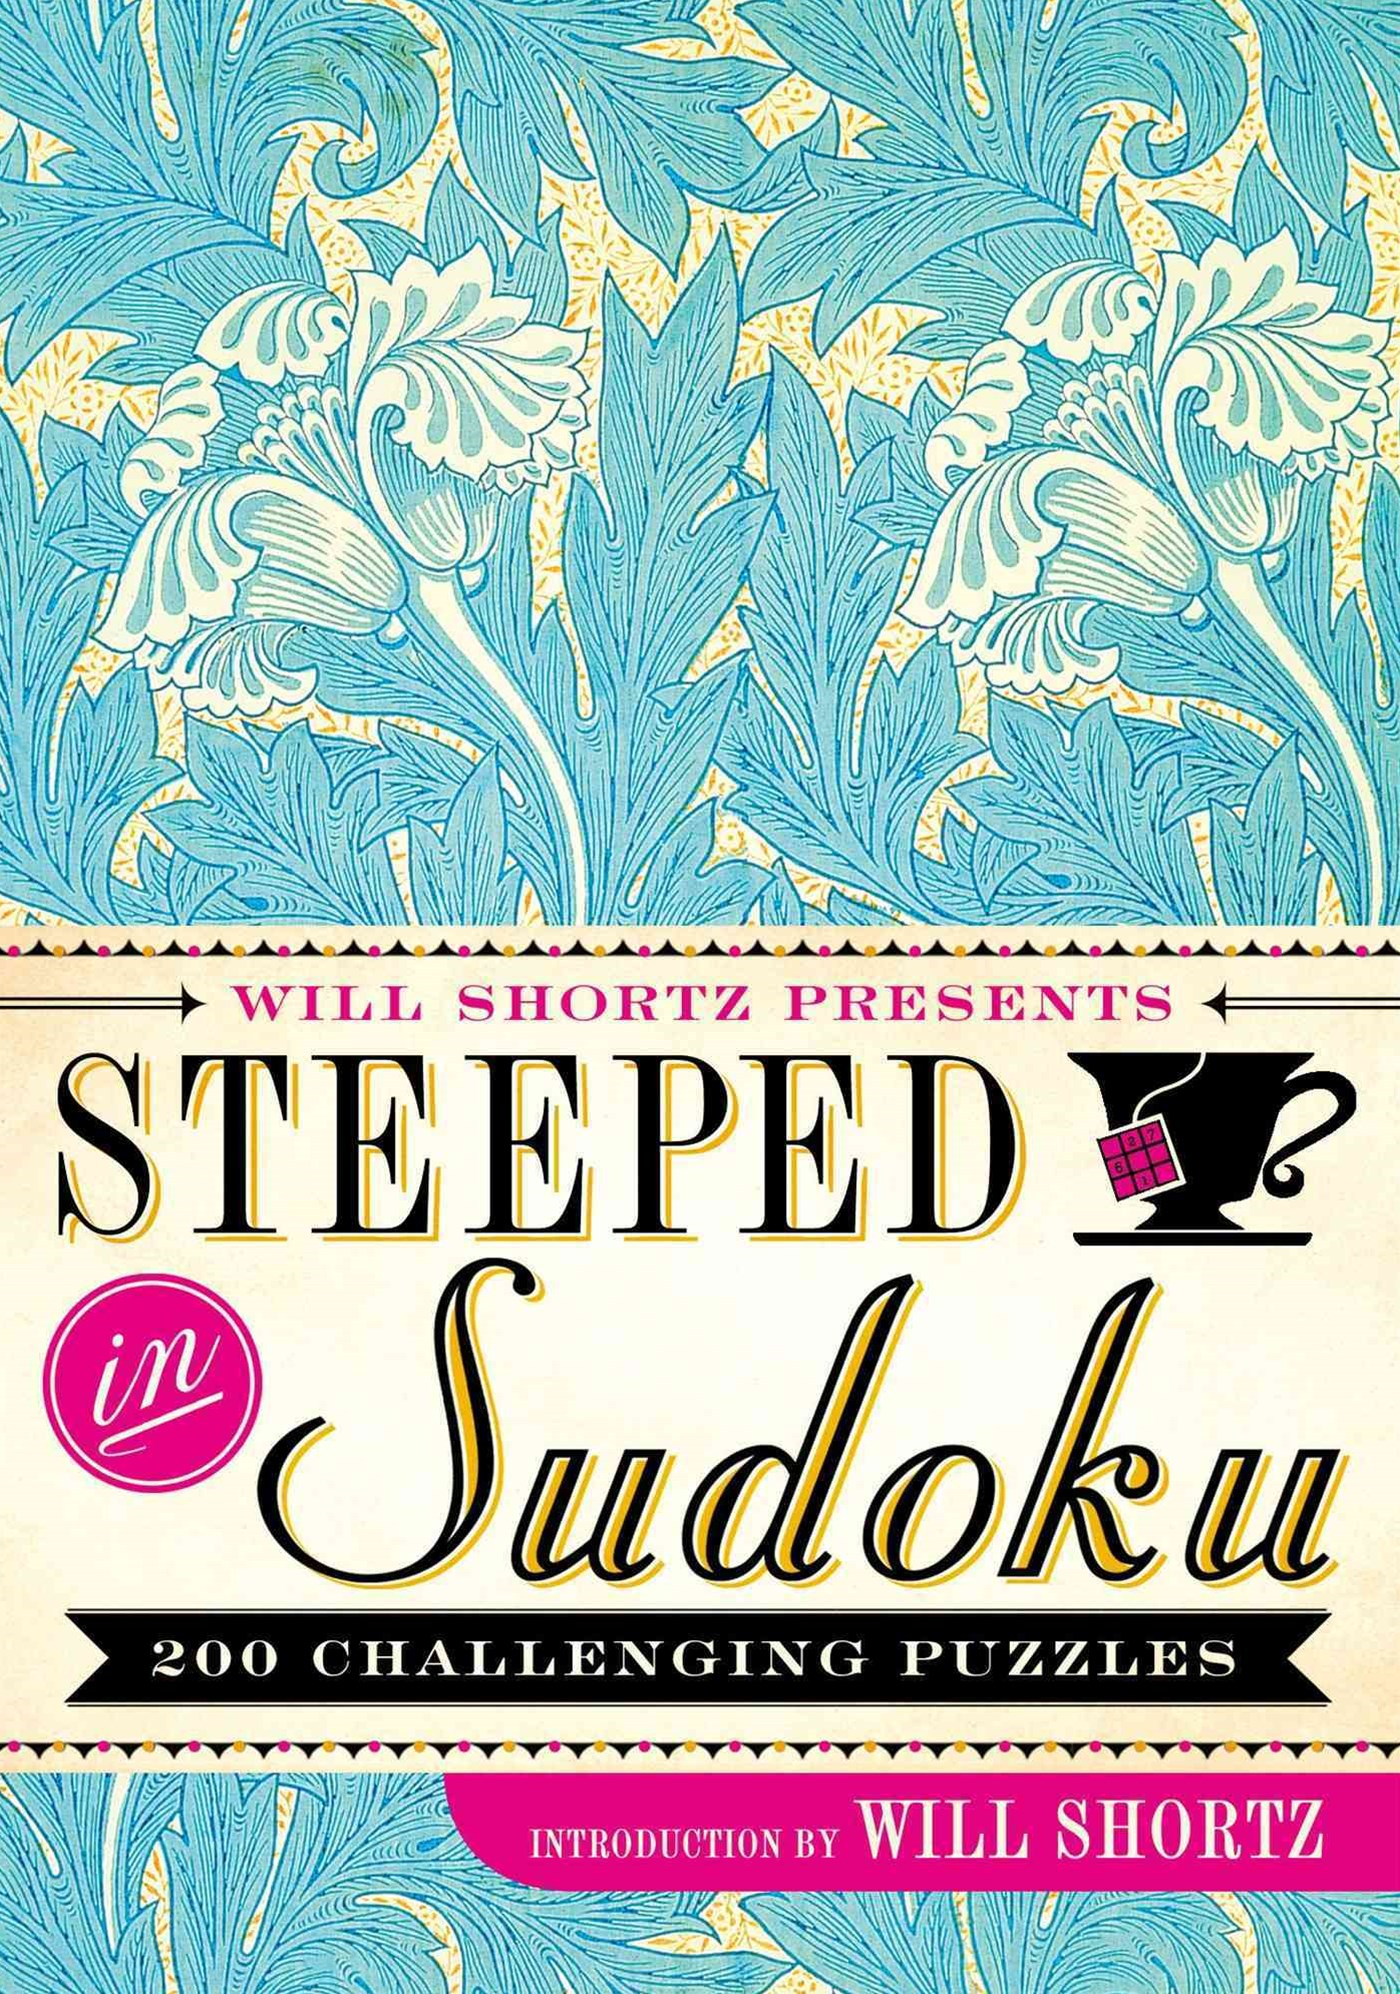 Will Shortz Presents Steeped in Sudoku